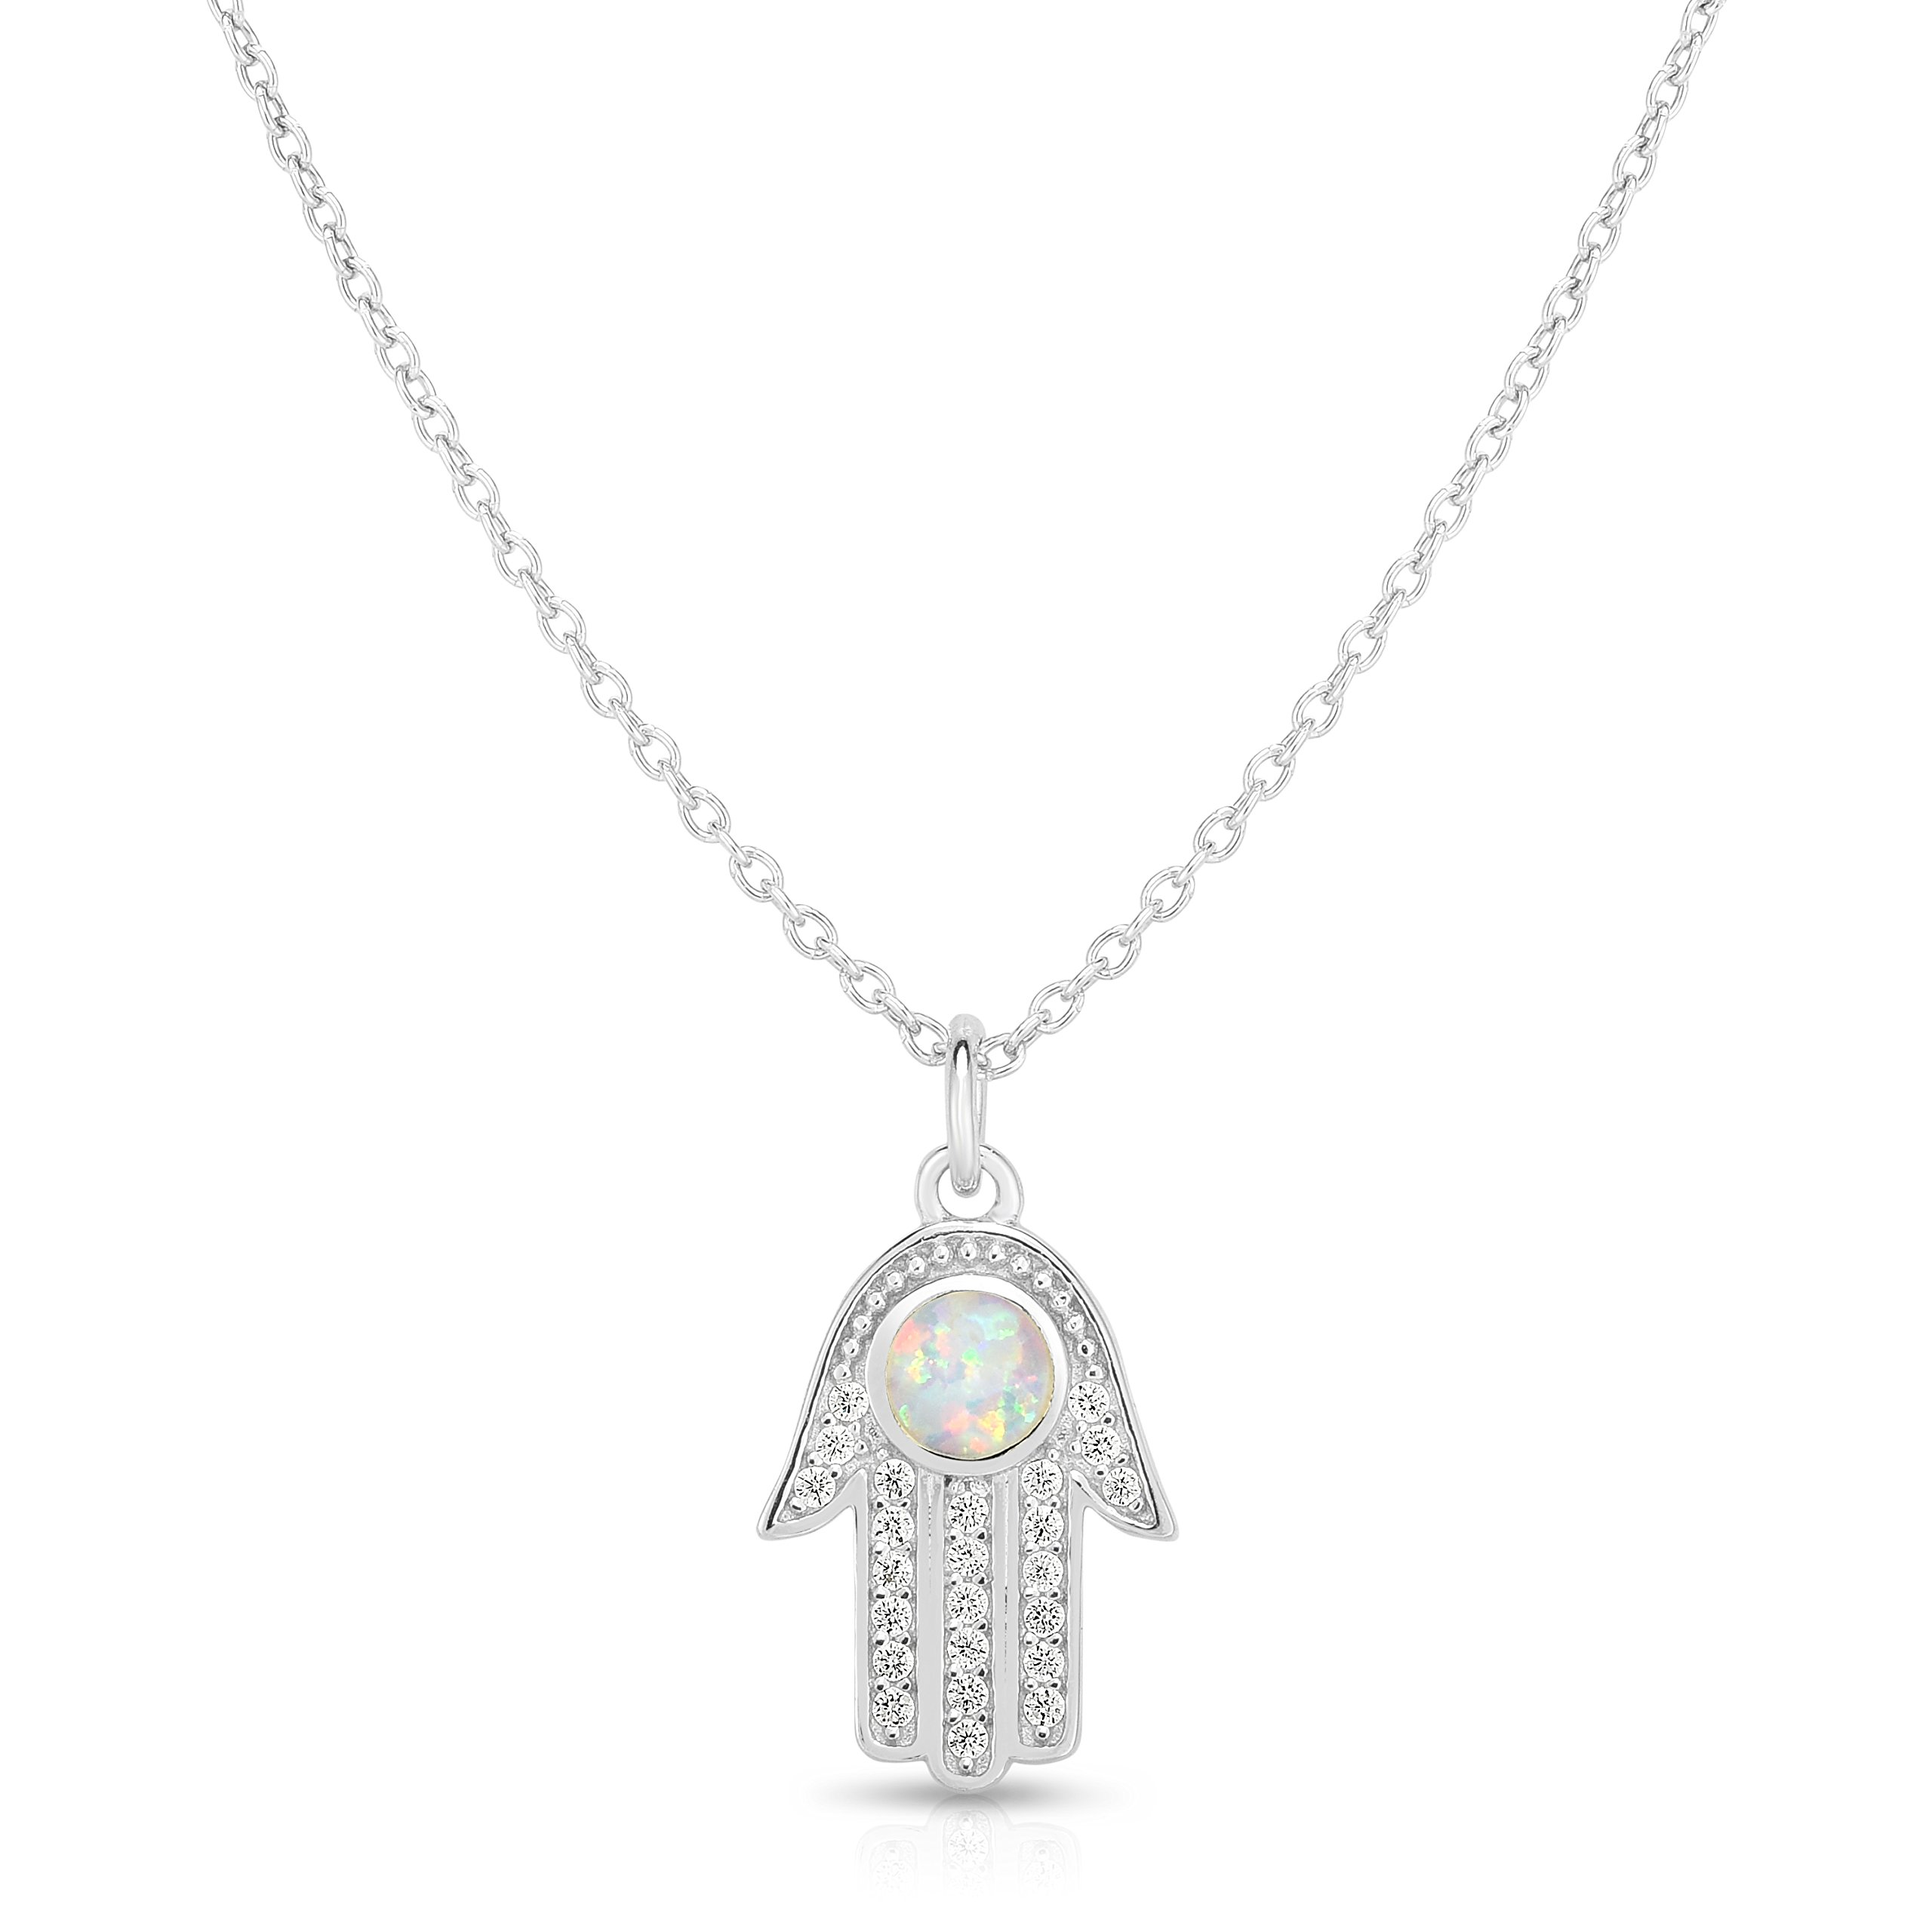 Unique Royal Jewelry Solid 925 Sterling Silver Cubic Zirconia Designer Hamsa Hand 16'' Length Pendant Necklace. (sterling-silver)